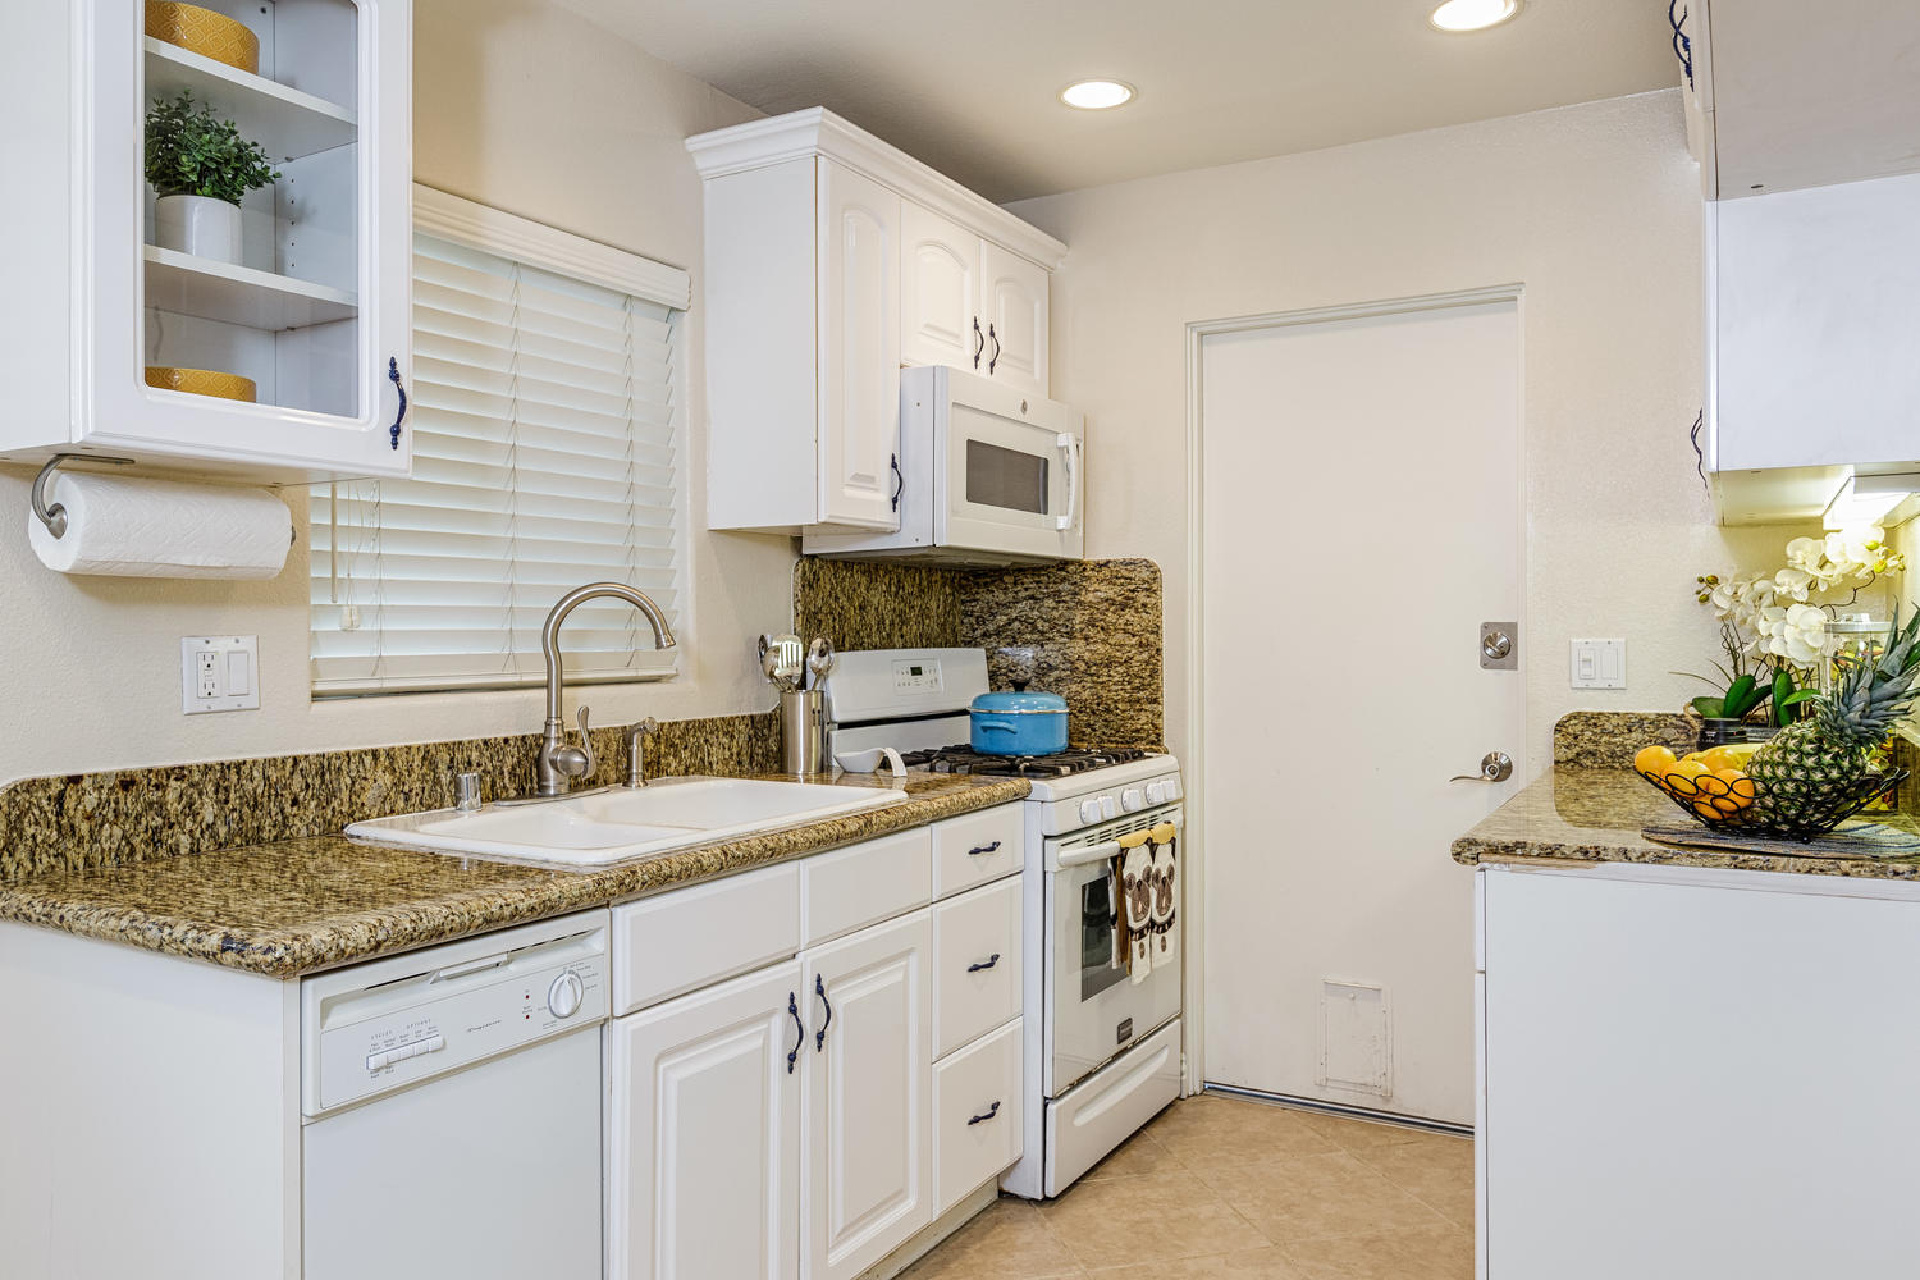 https://www.addressrealestate.com/media/images/blogs/38/2/b_7-1408-ocean-dr-oxnard-ca-93035-mls-size-005-9-kitchen-1500x1000-72dpi.jpg